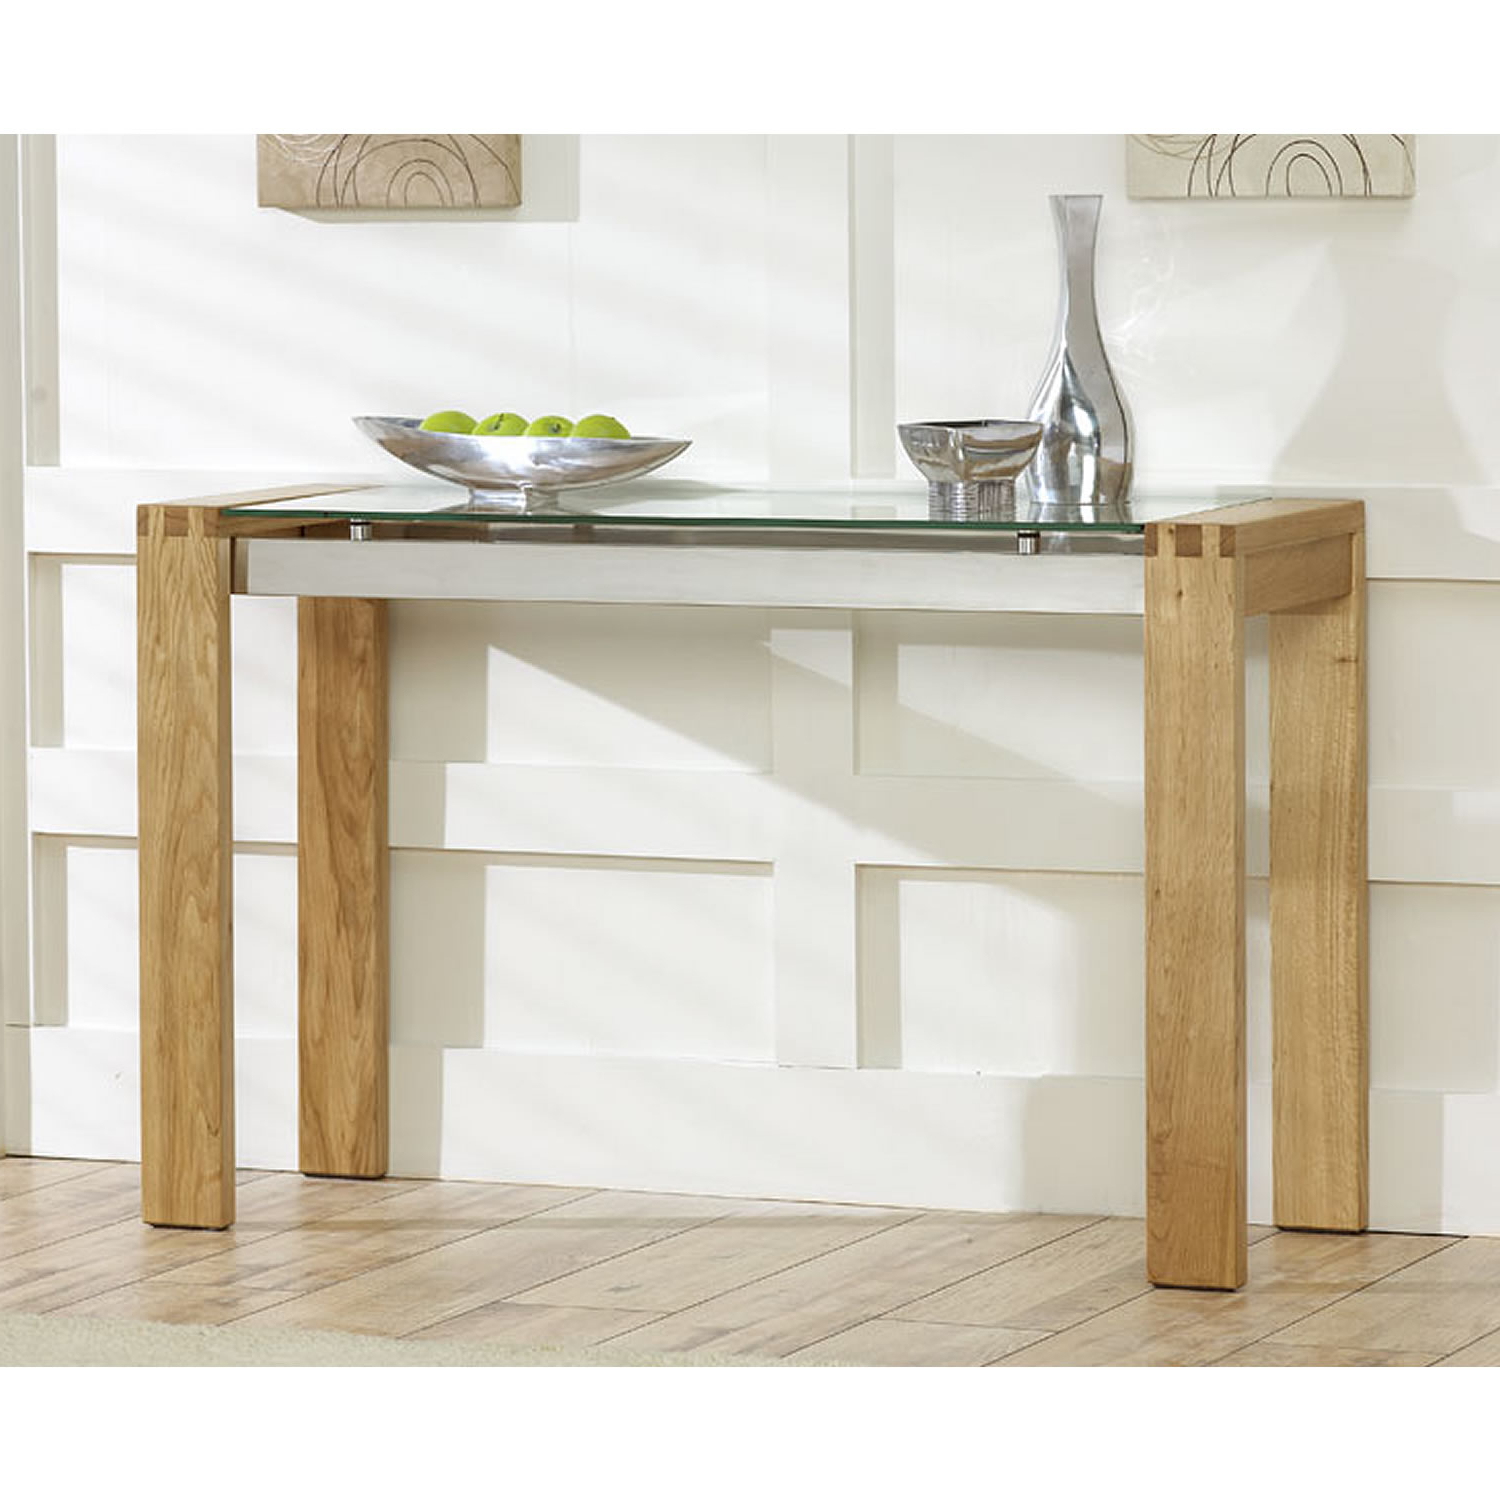 Venice Solid Oak Console Table With Glass Top Next Day Elegant Intended For Era Glass Console Tables (View 20 of 20)